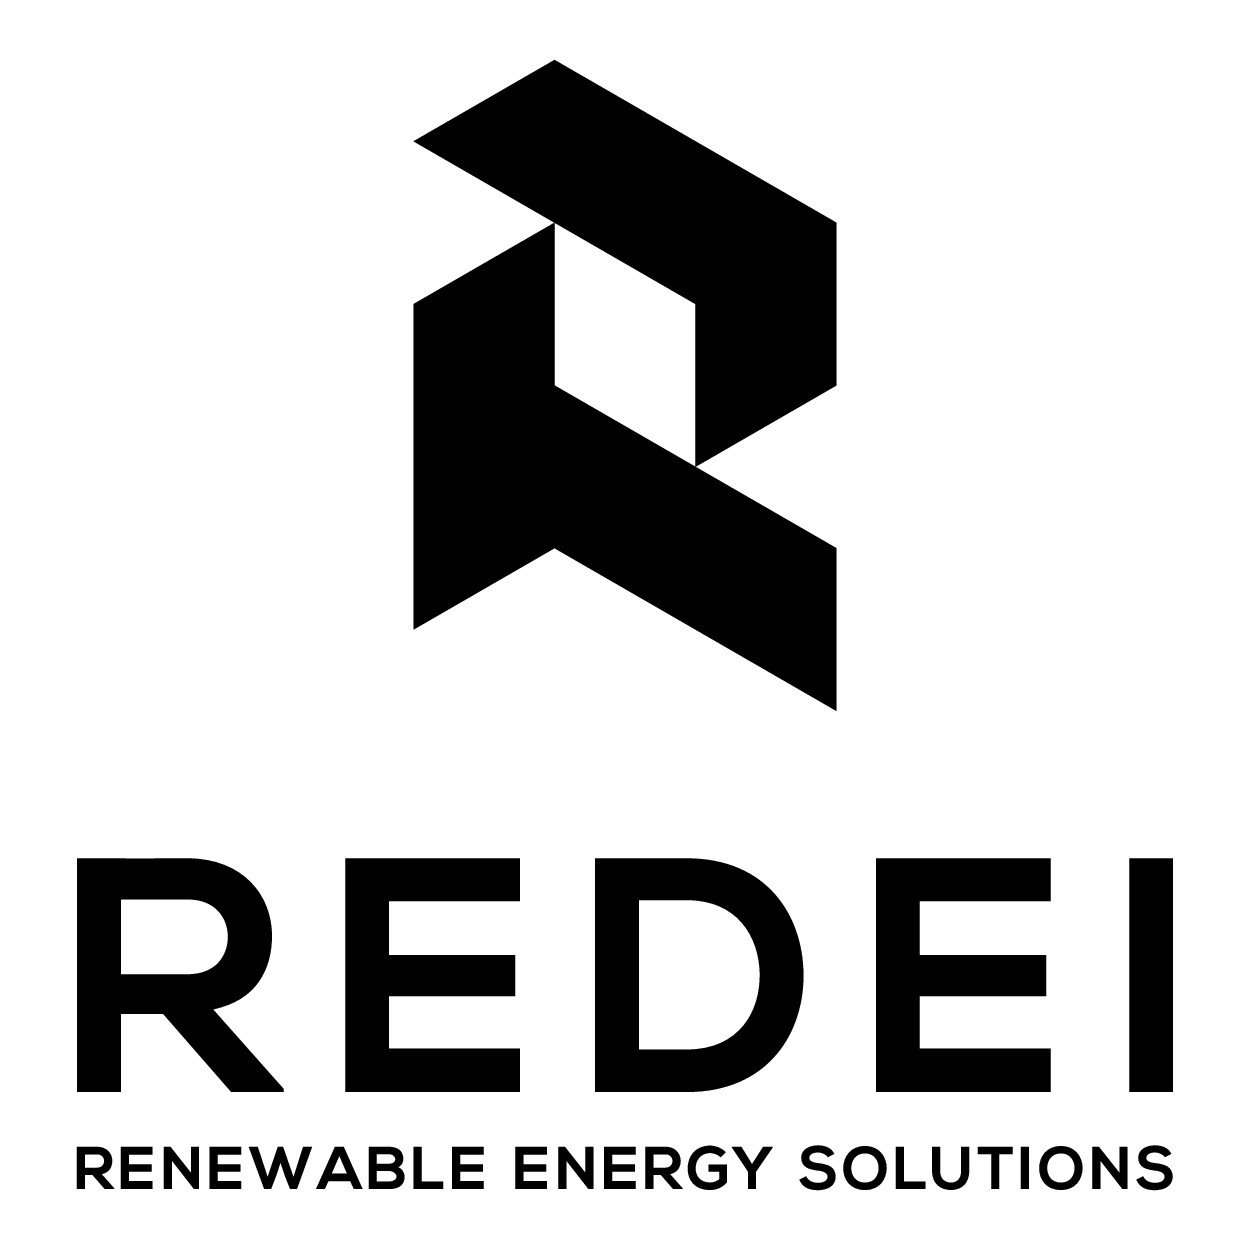 Design a functional and attractive logo for a Renewable Energy company